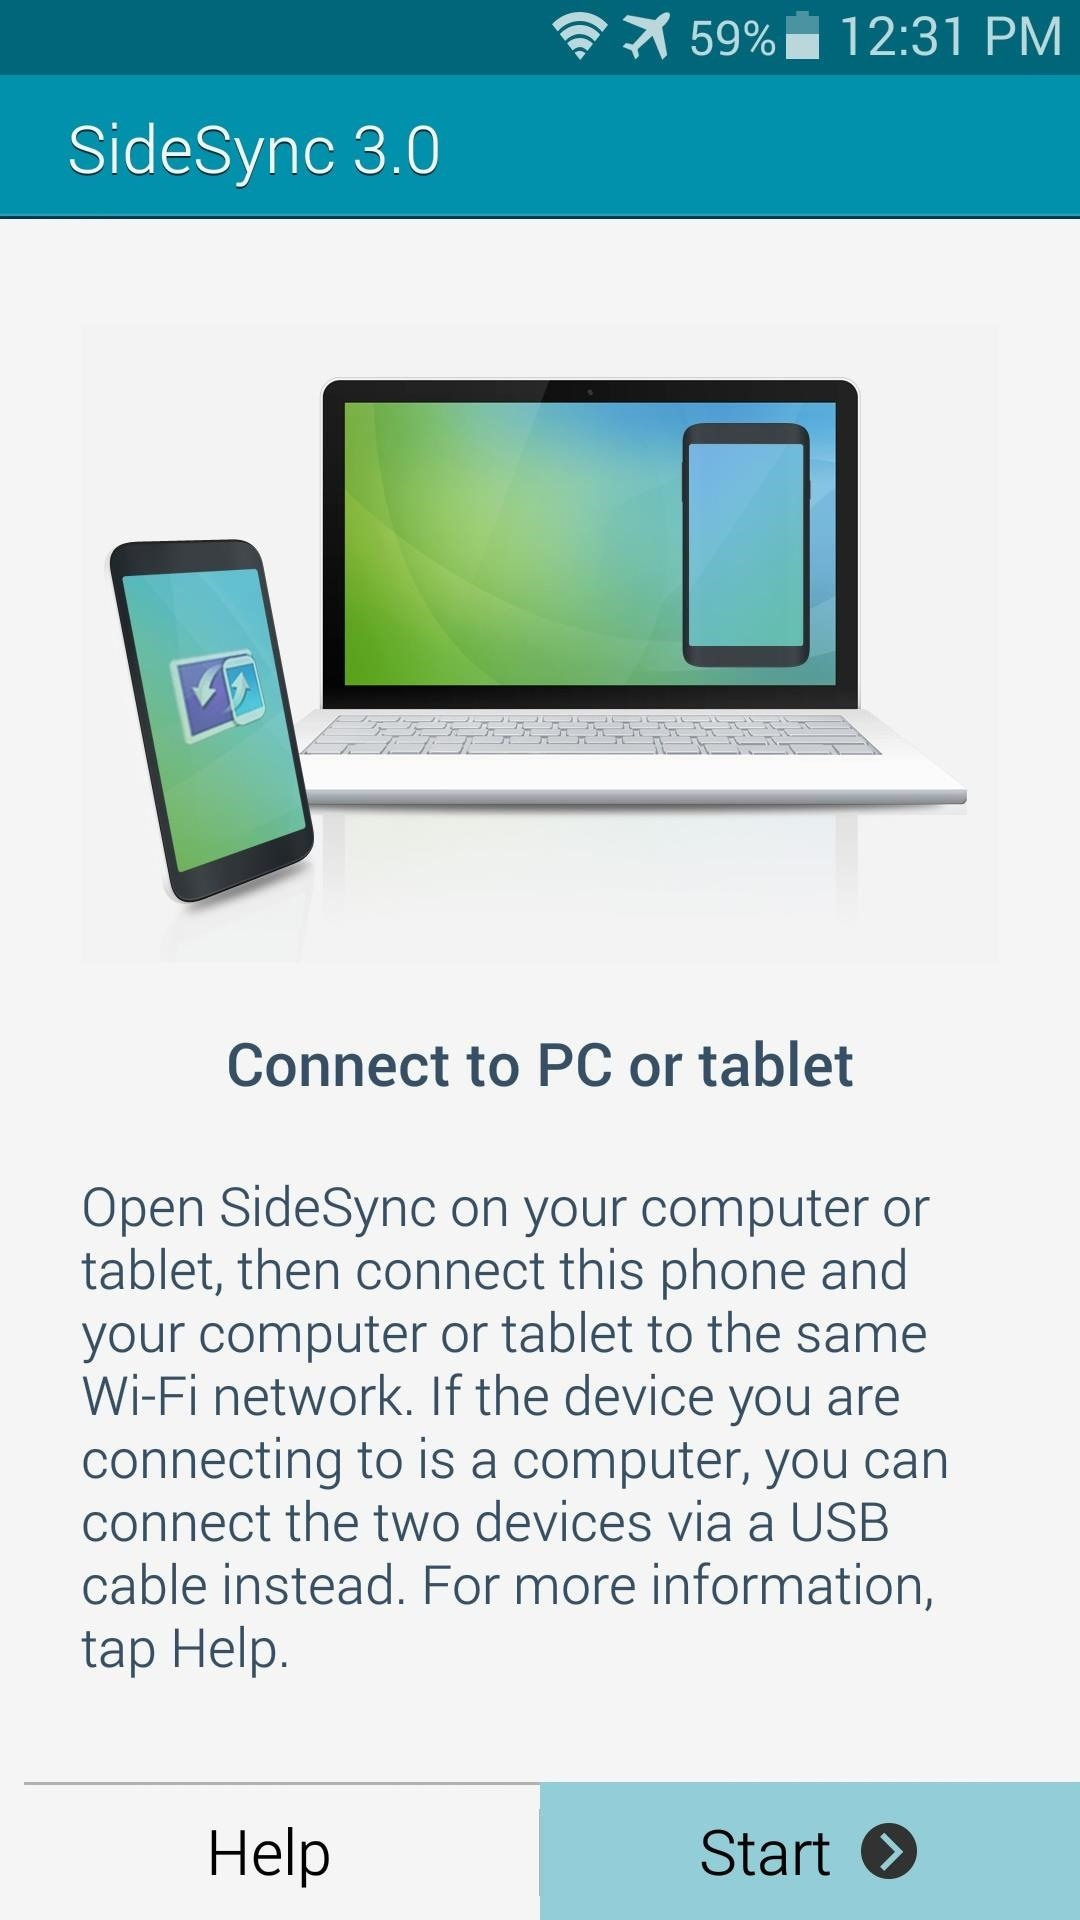 When You First Start The Sidesync Service On Your Galaxy Device, The App  Will Try To Establish A Wifi Connection With Your Pc It Can't Do This  Without The